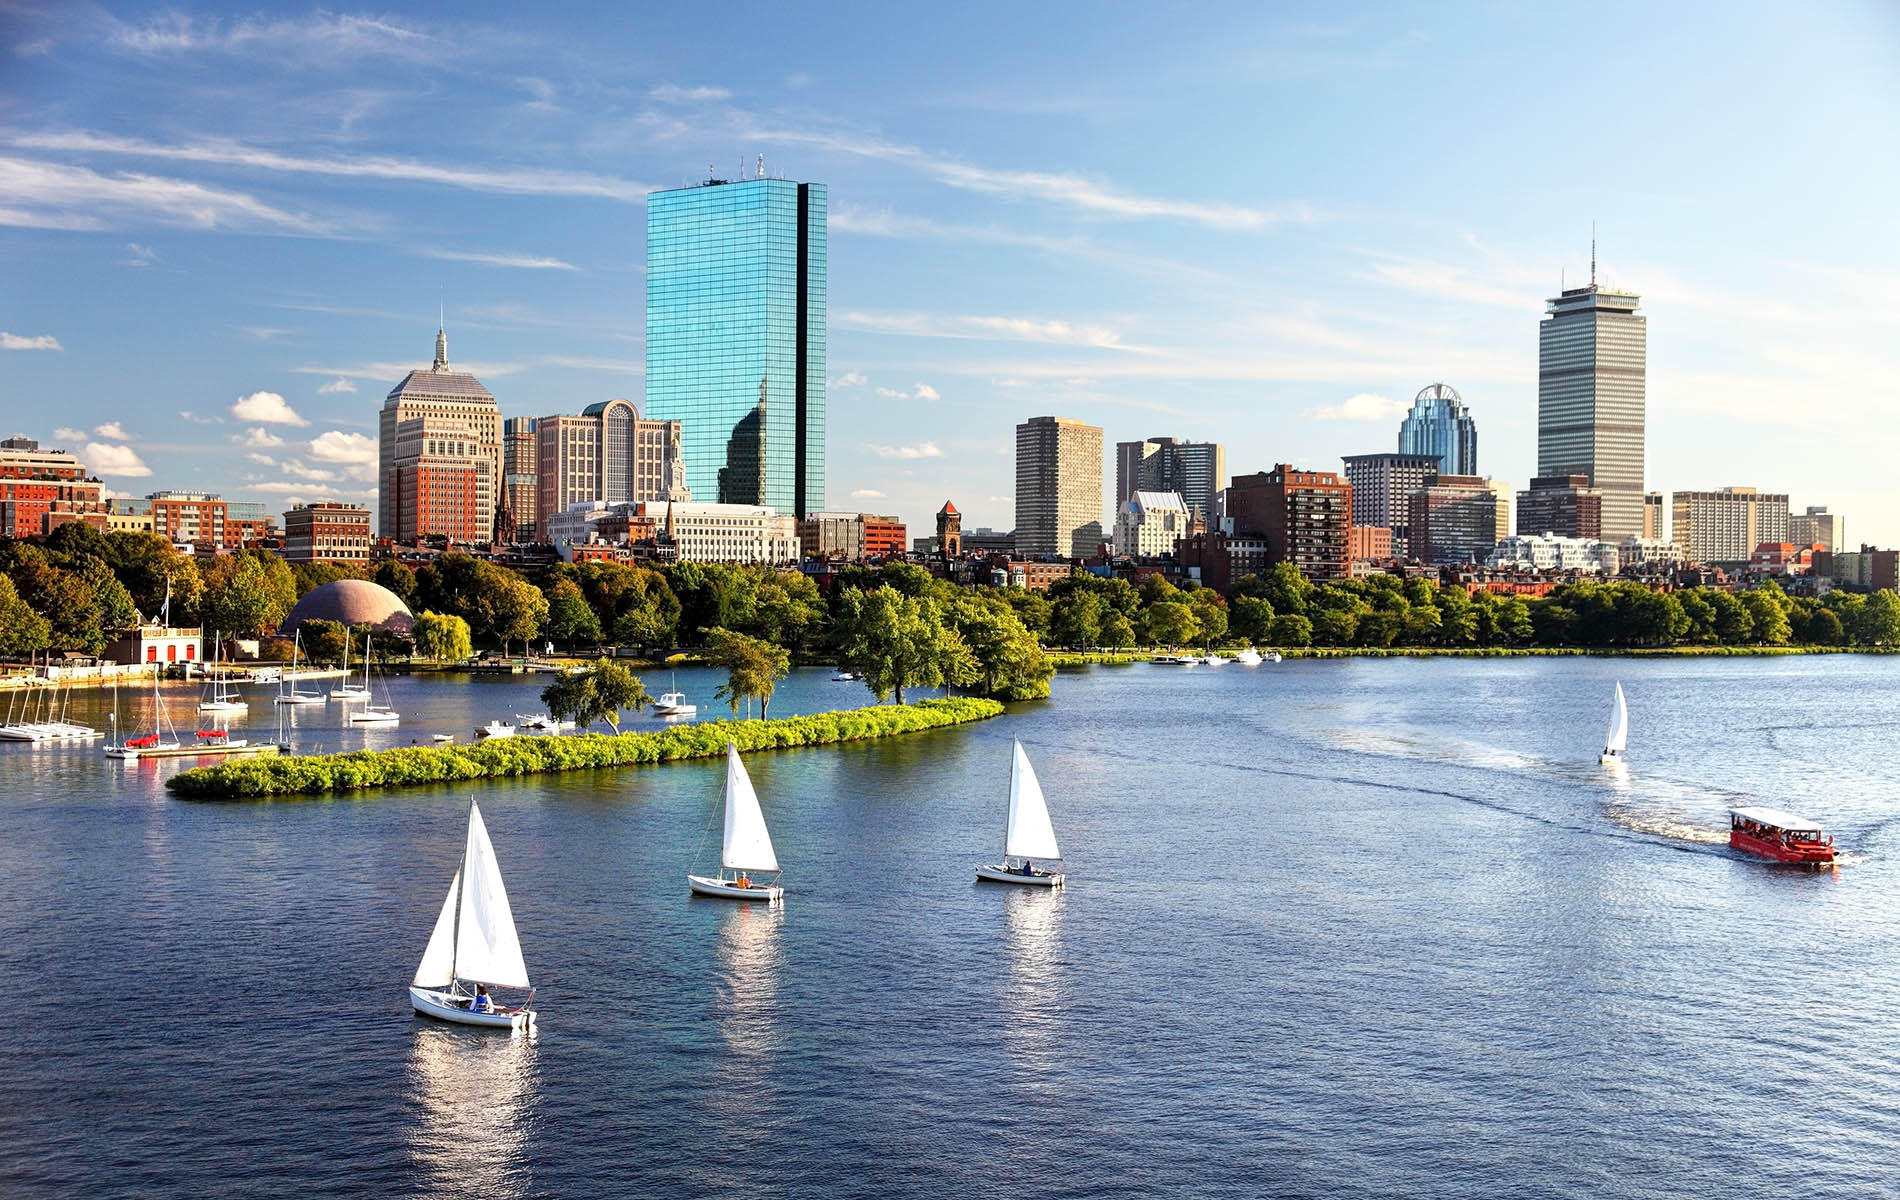 skyline view of boston with a tall blue glass building with river and green park and 3 sail boats